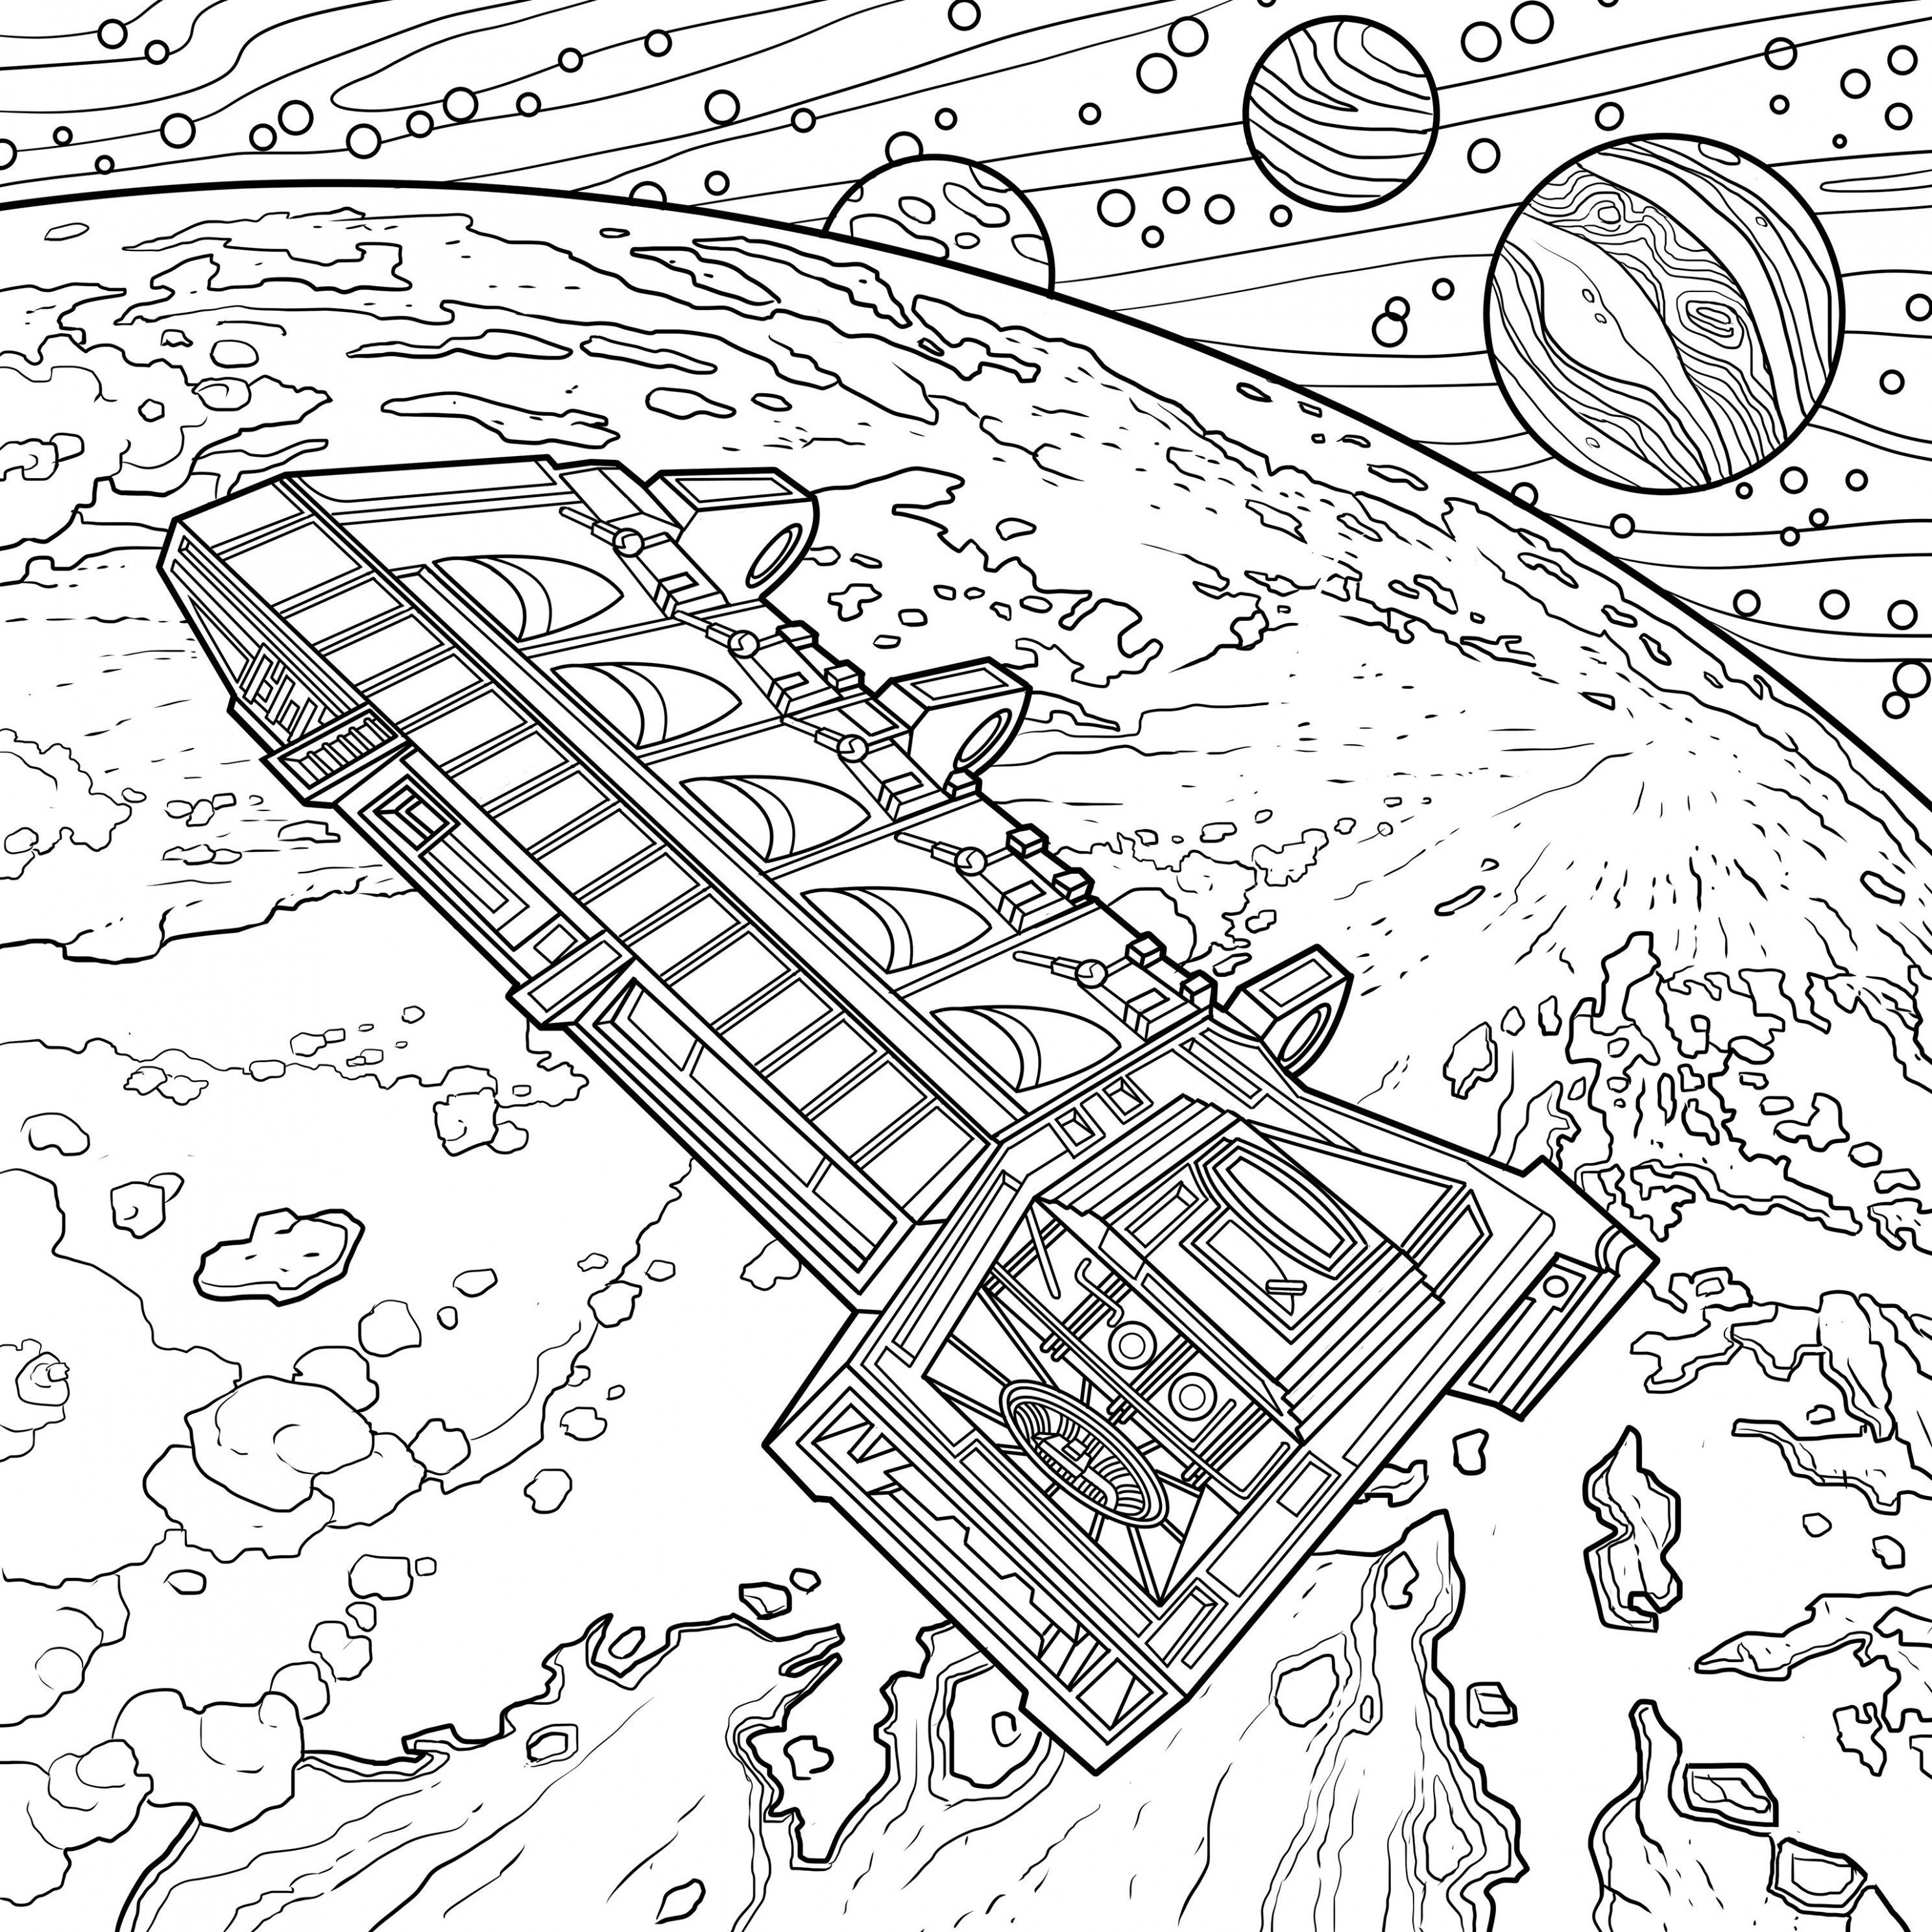 Alien: The Coloring Book features a franchise full of iconic sci-fi ...